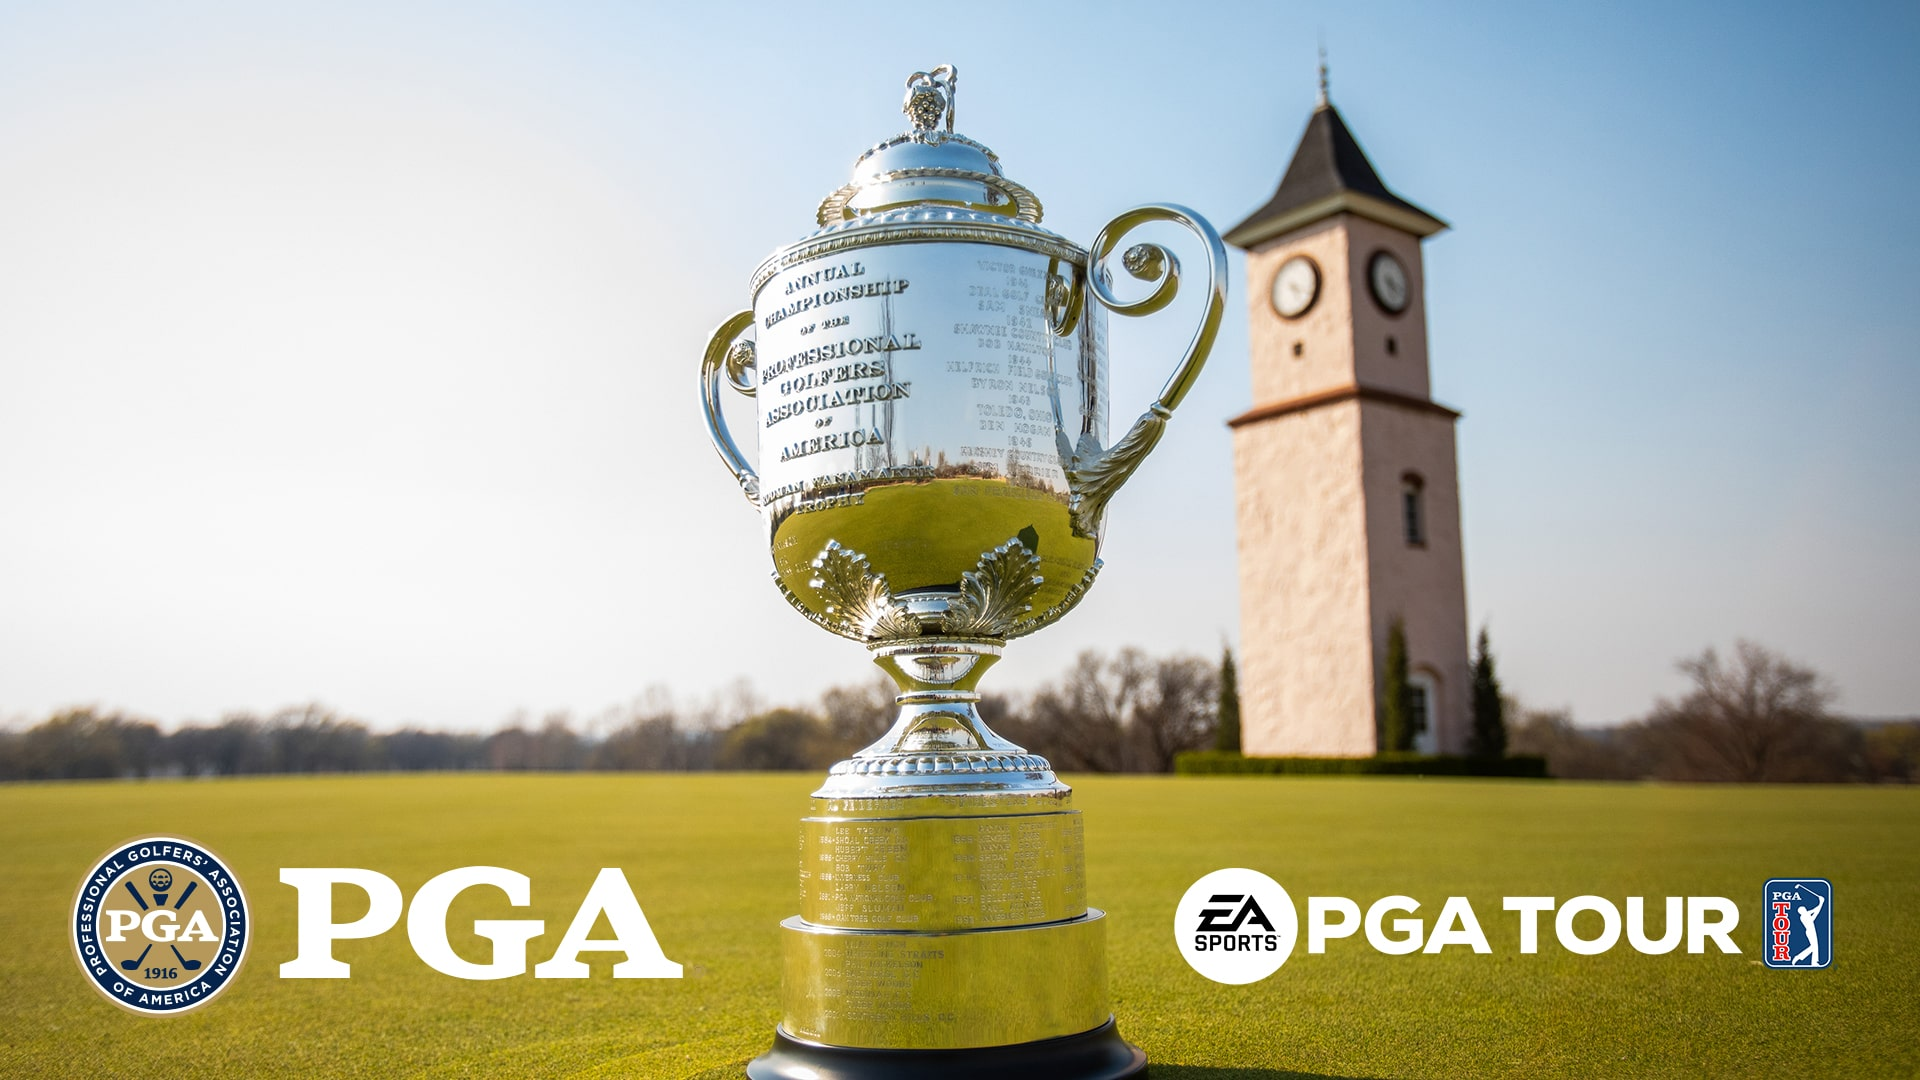 EA SPORTS e PGA OF AMERICA annunciano una collaborazione